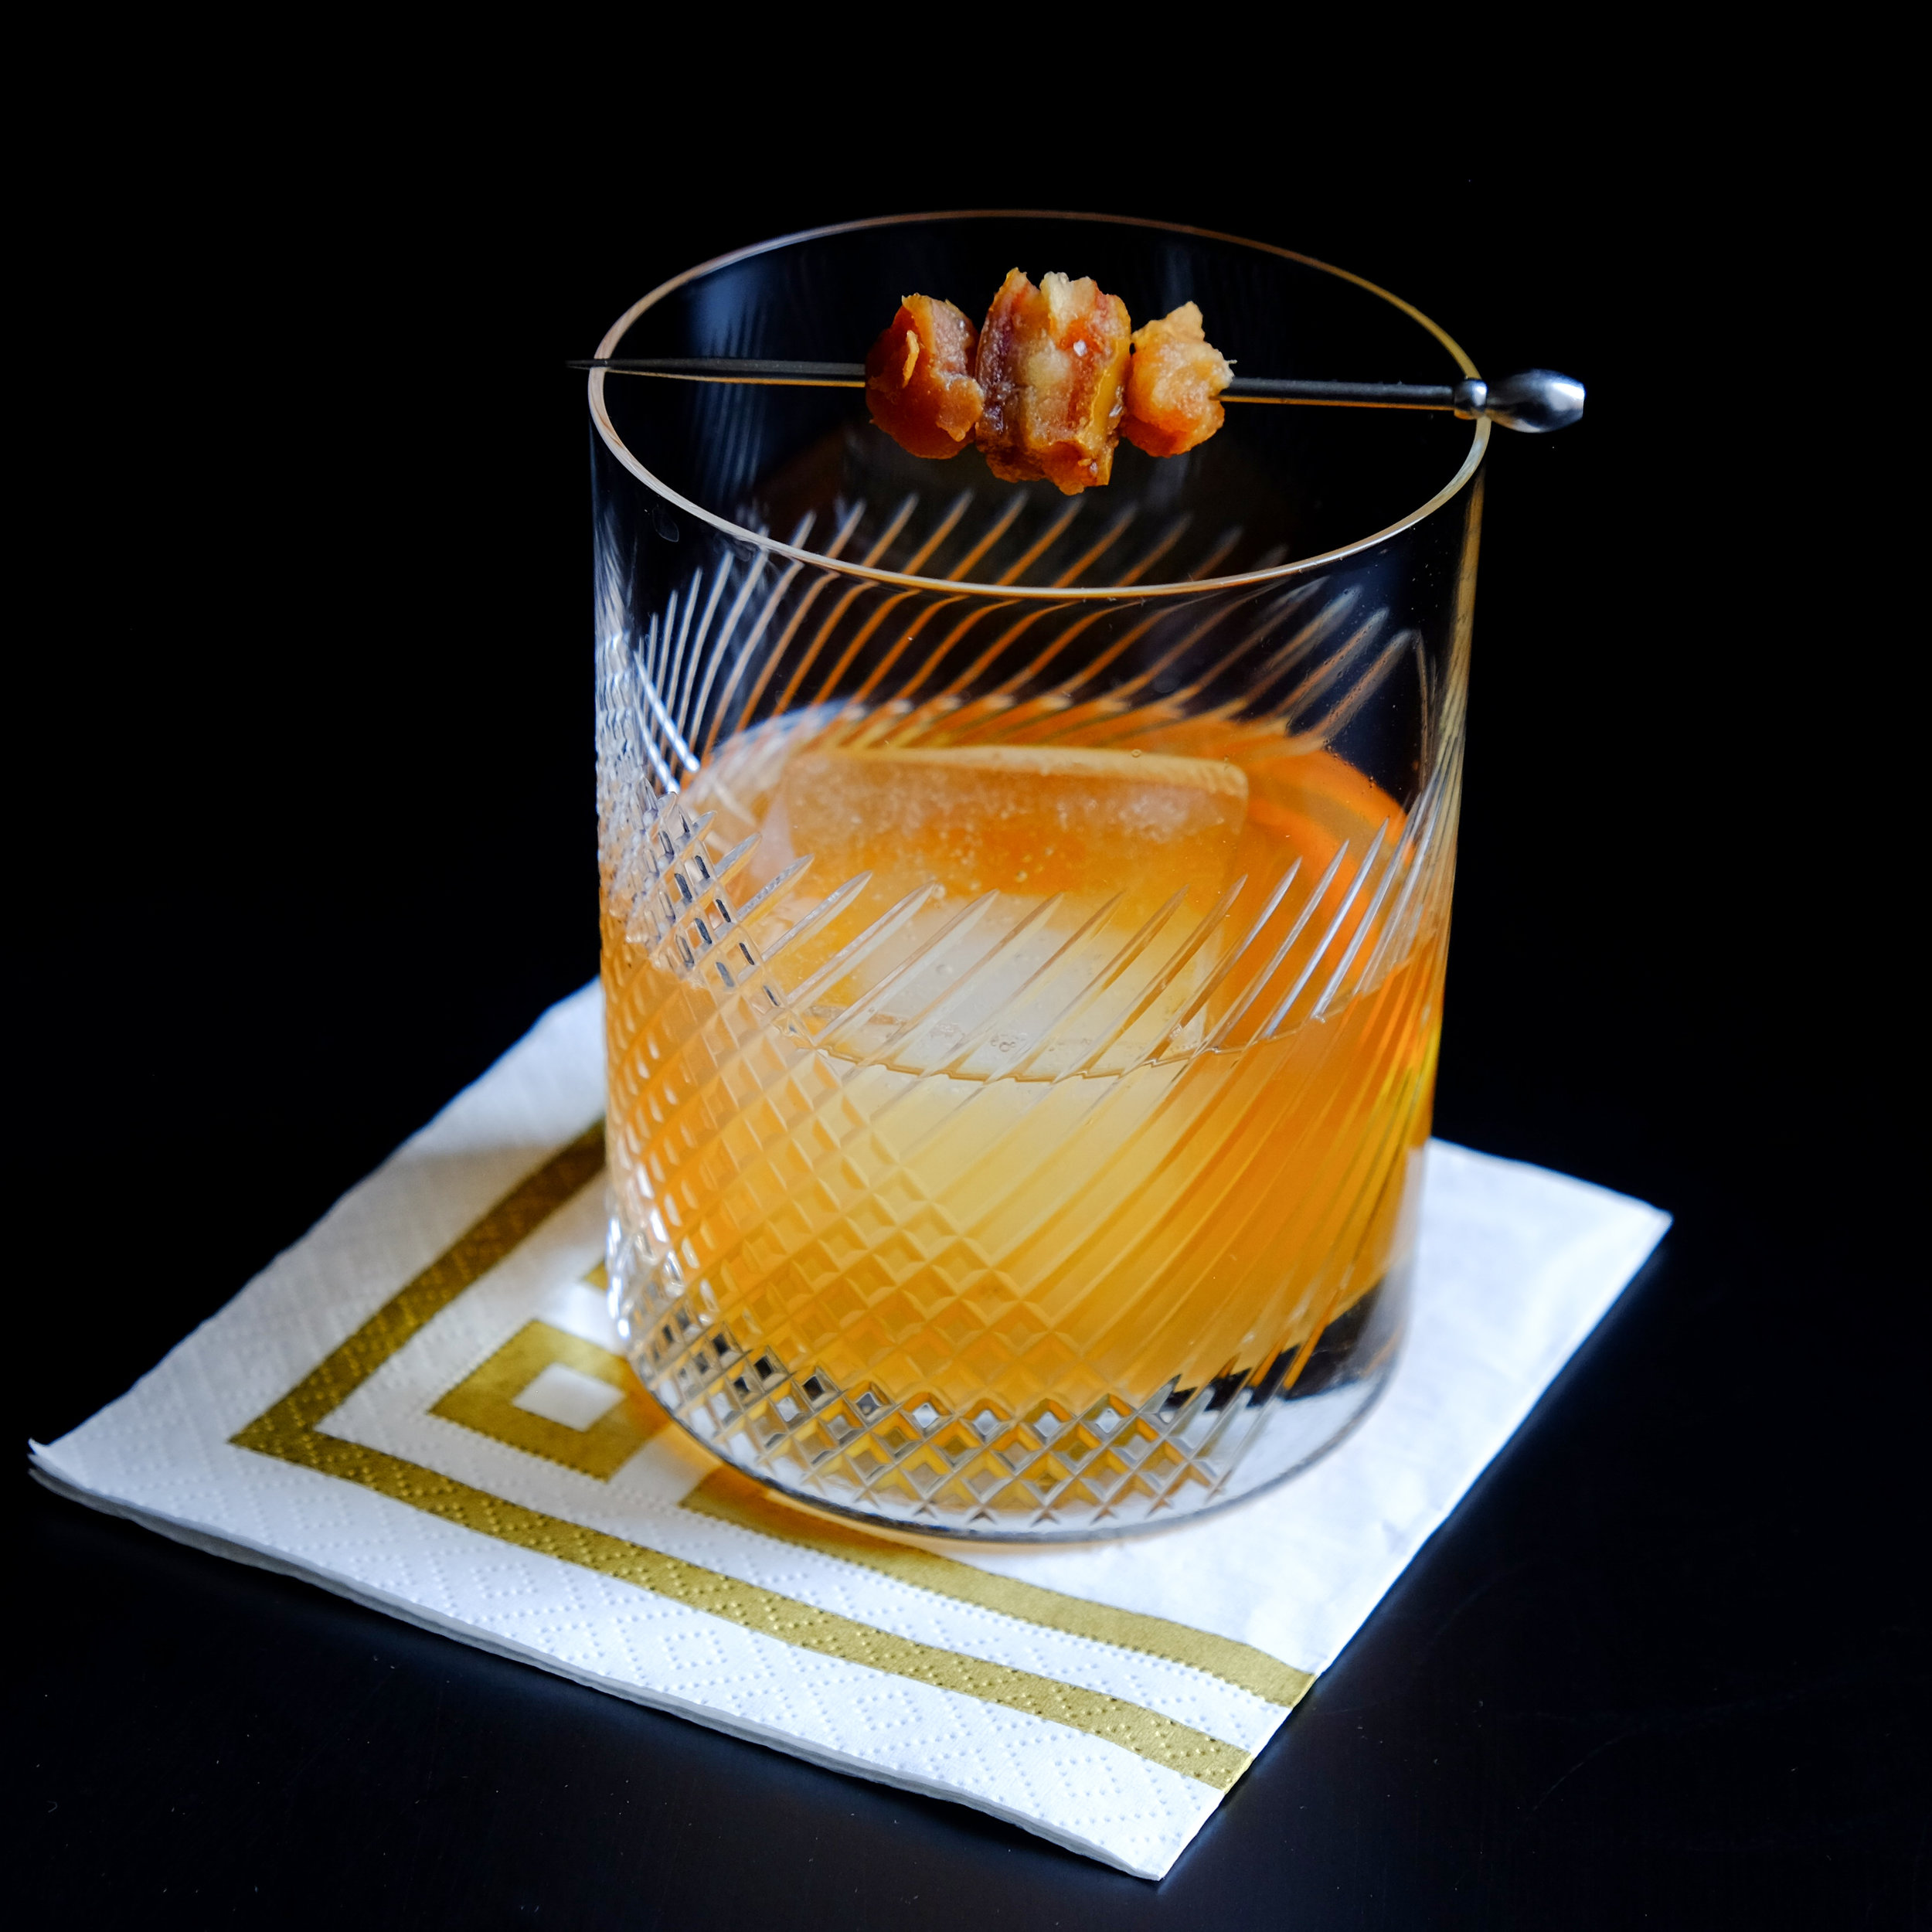 DATE OLD FASHIONED - A twist on the classic Old Fashioned featuring bourbon infused dates.